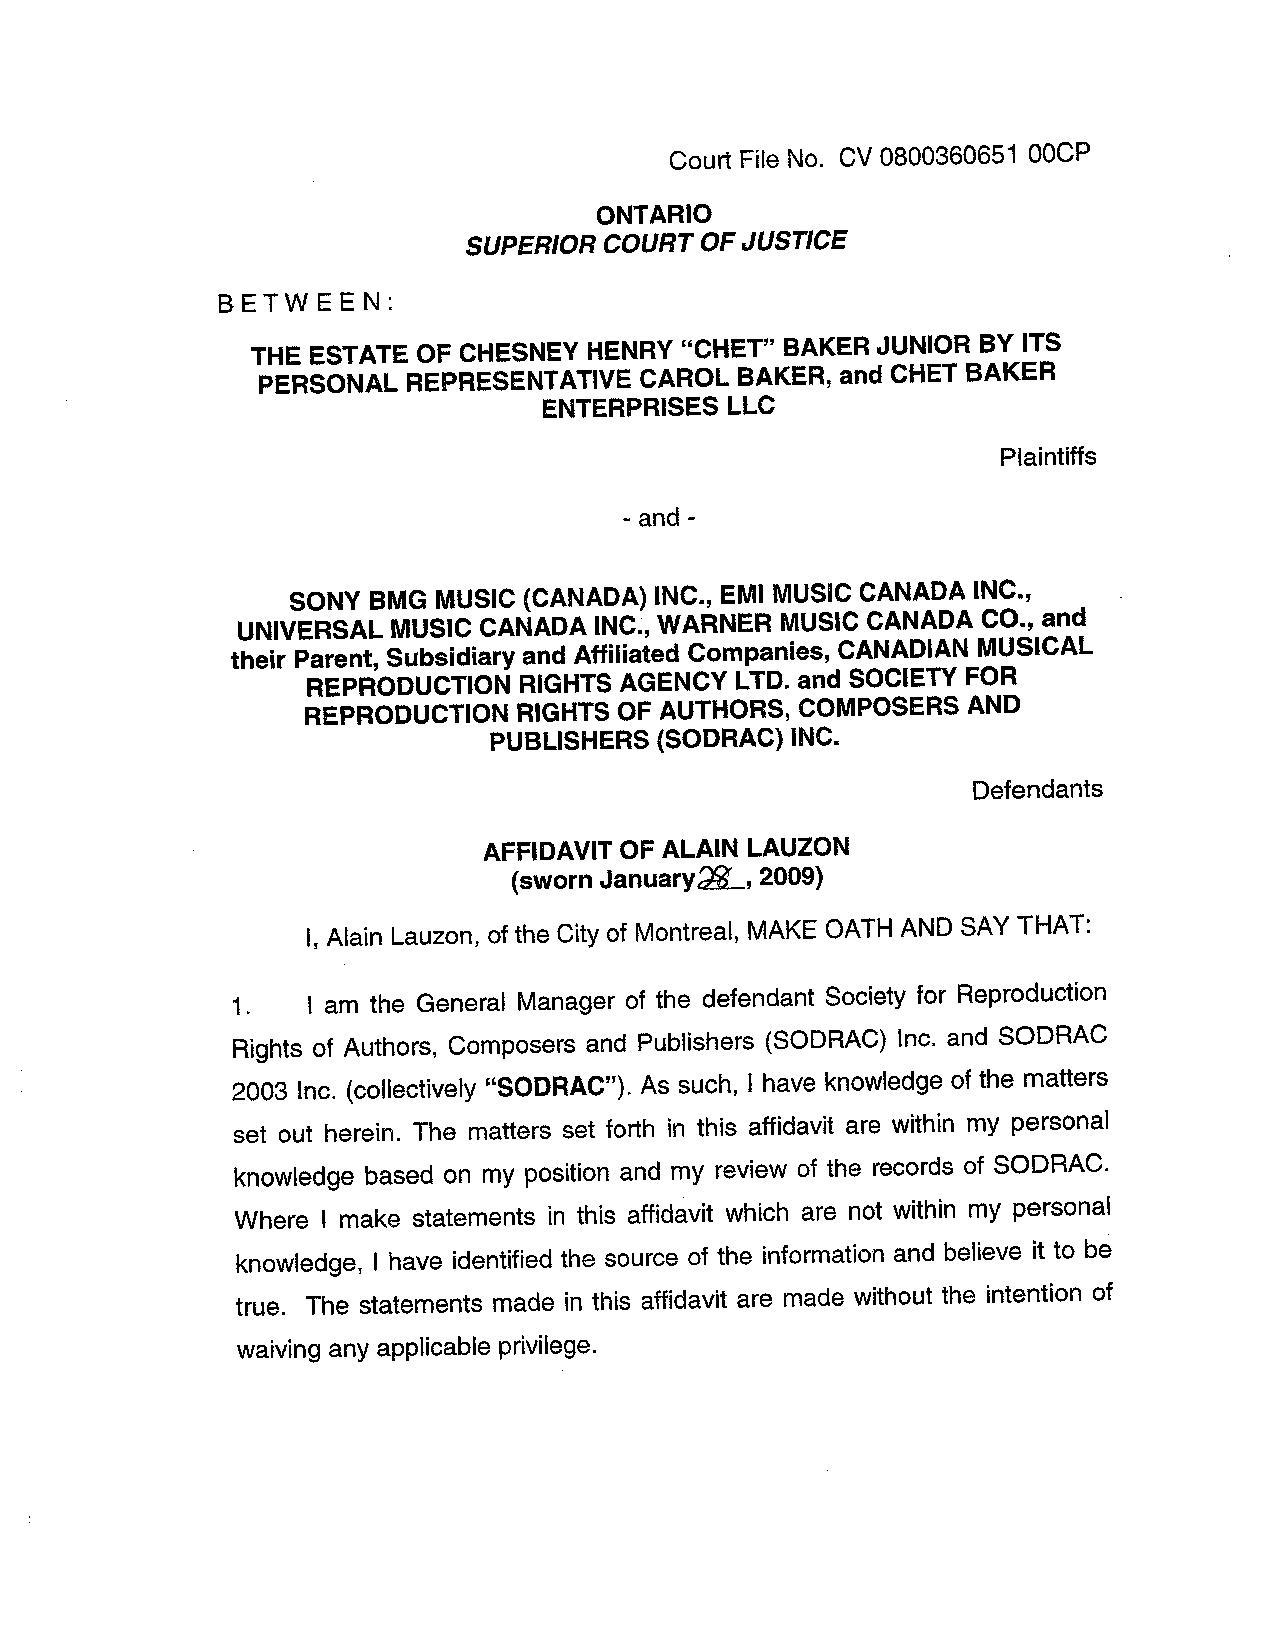 File:Affidavit Of Alain Lauzon Sworn January 28, 2009.PDF